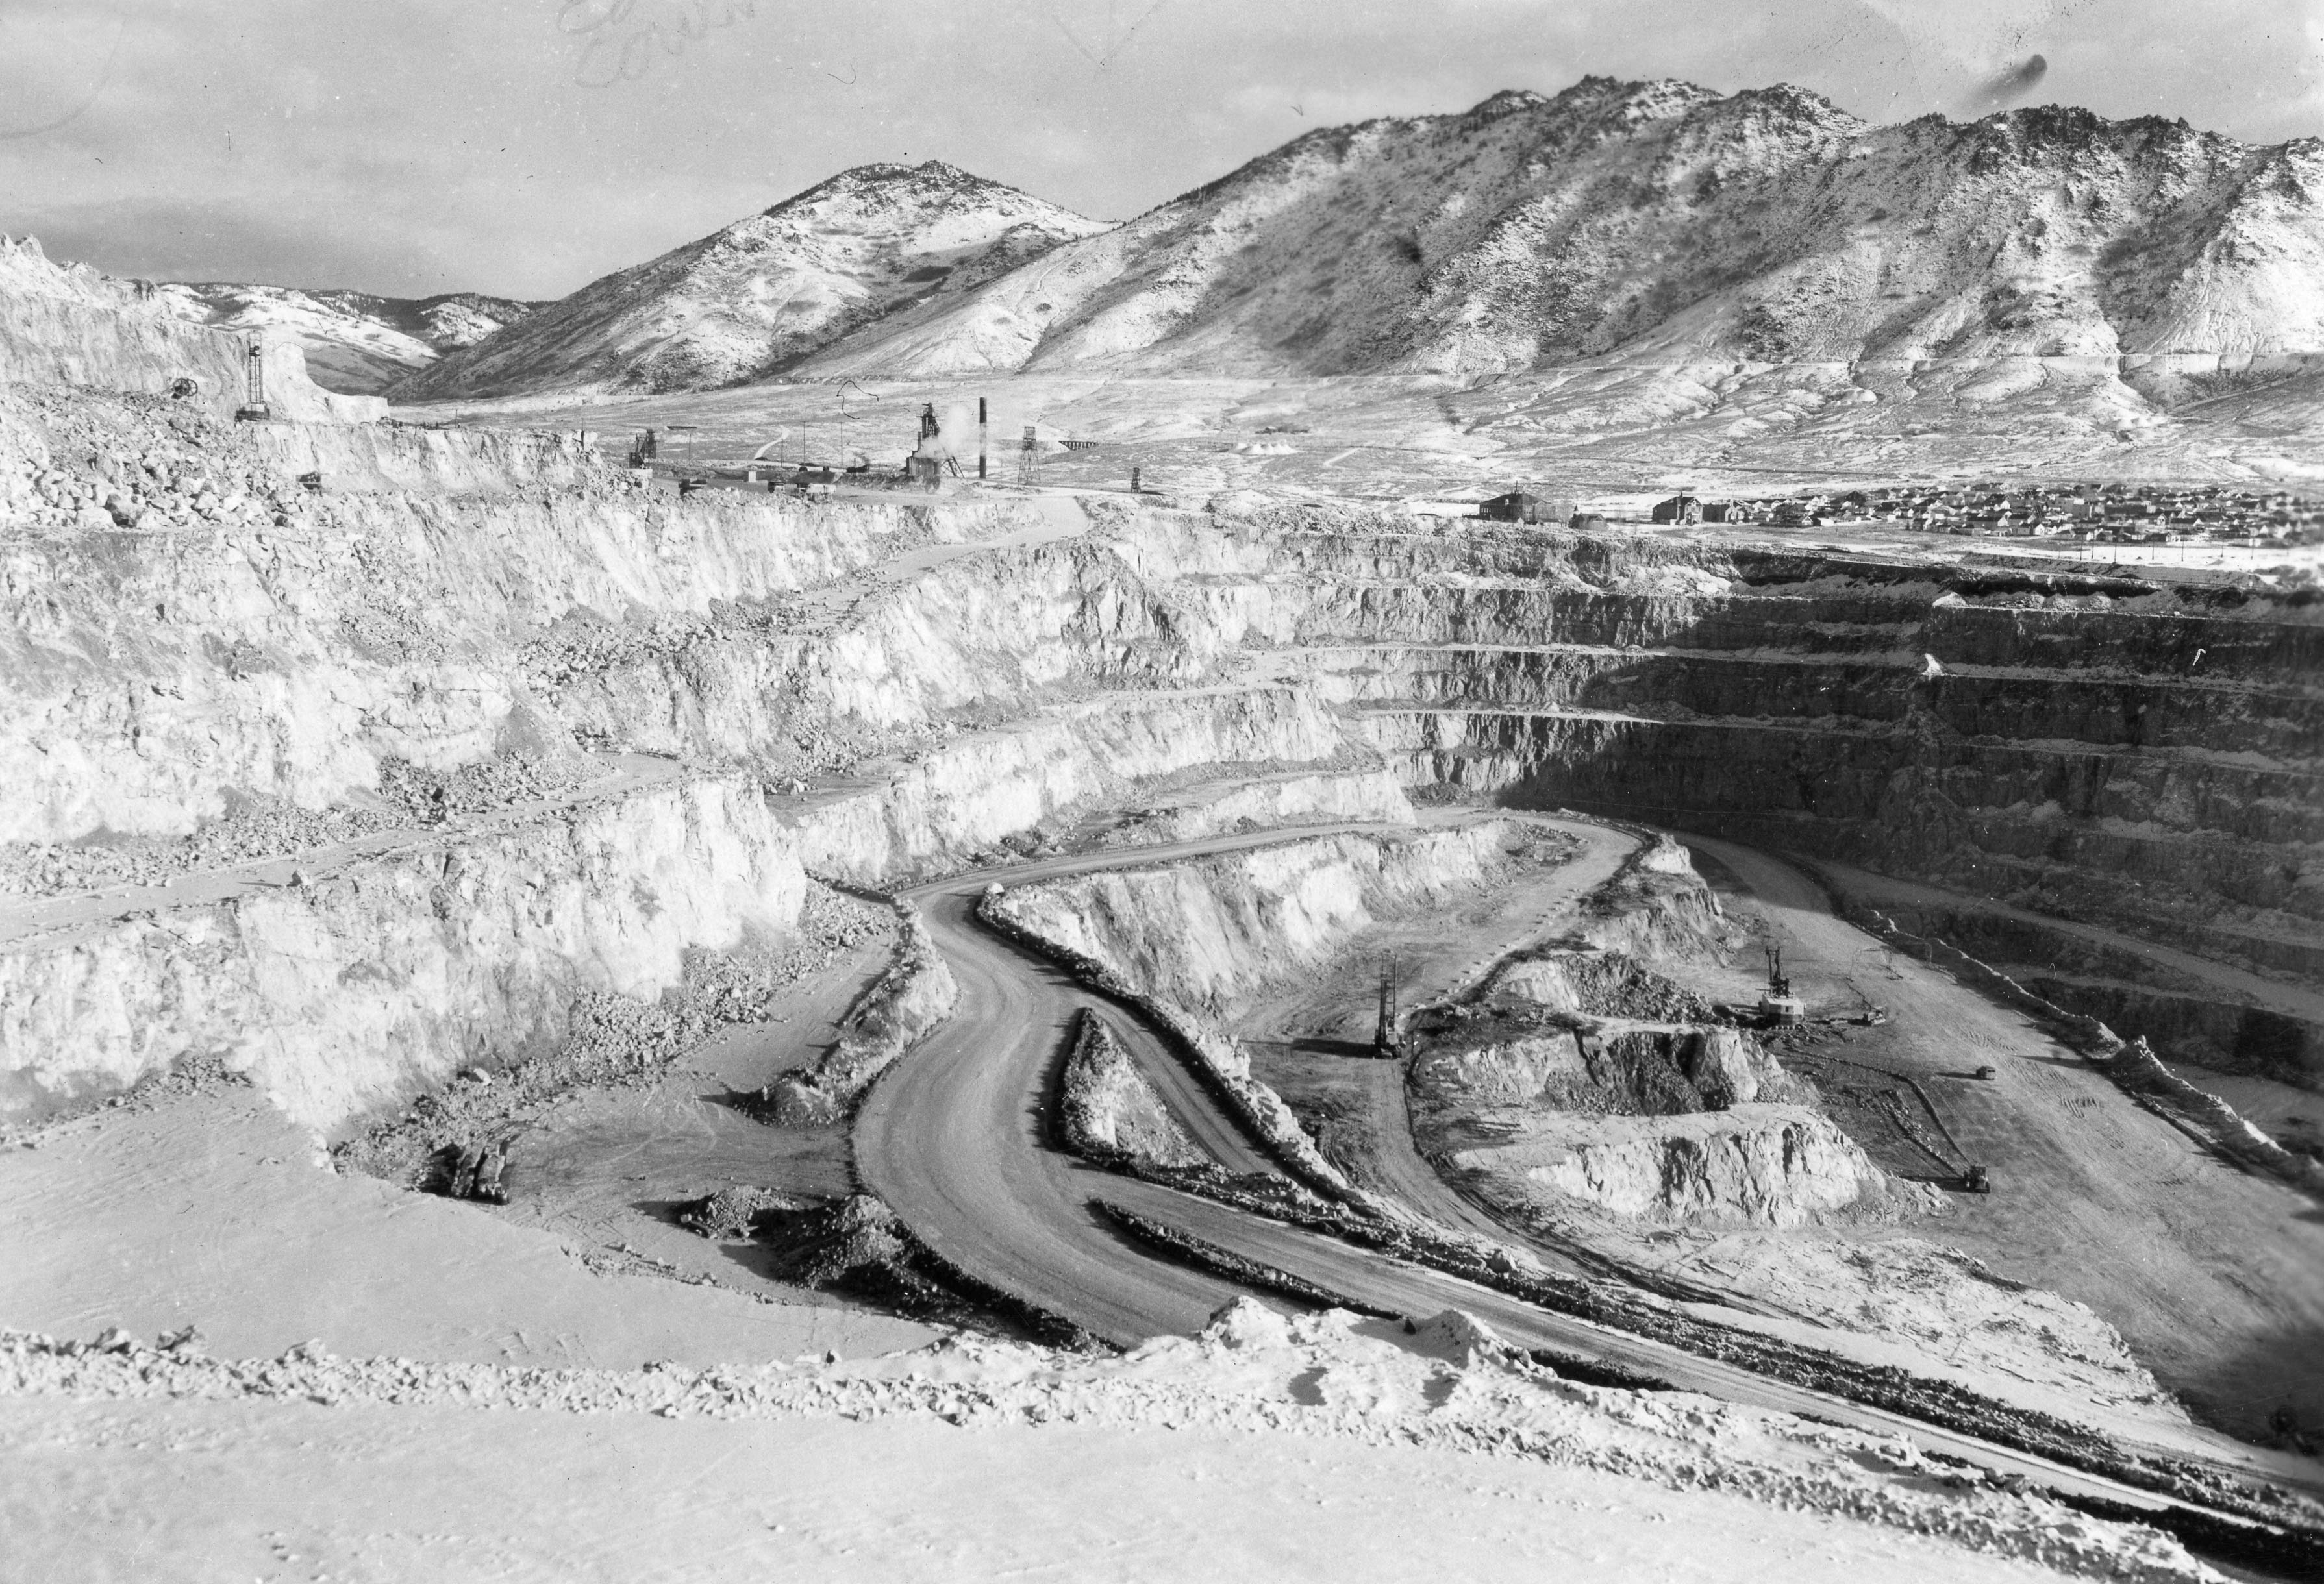 Snow on the Benches of the Berkeley Pit. Photo courtesy of the Butte-Silver Bow Public Archives.